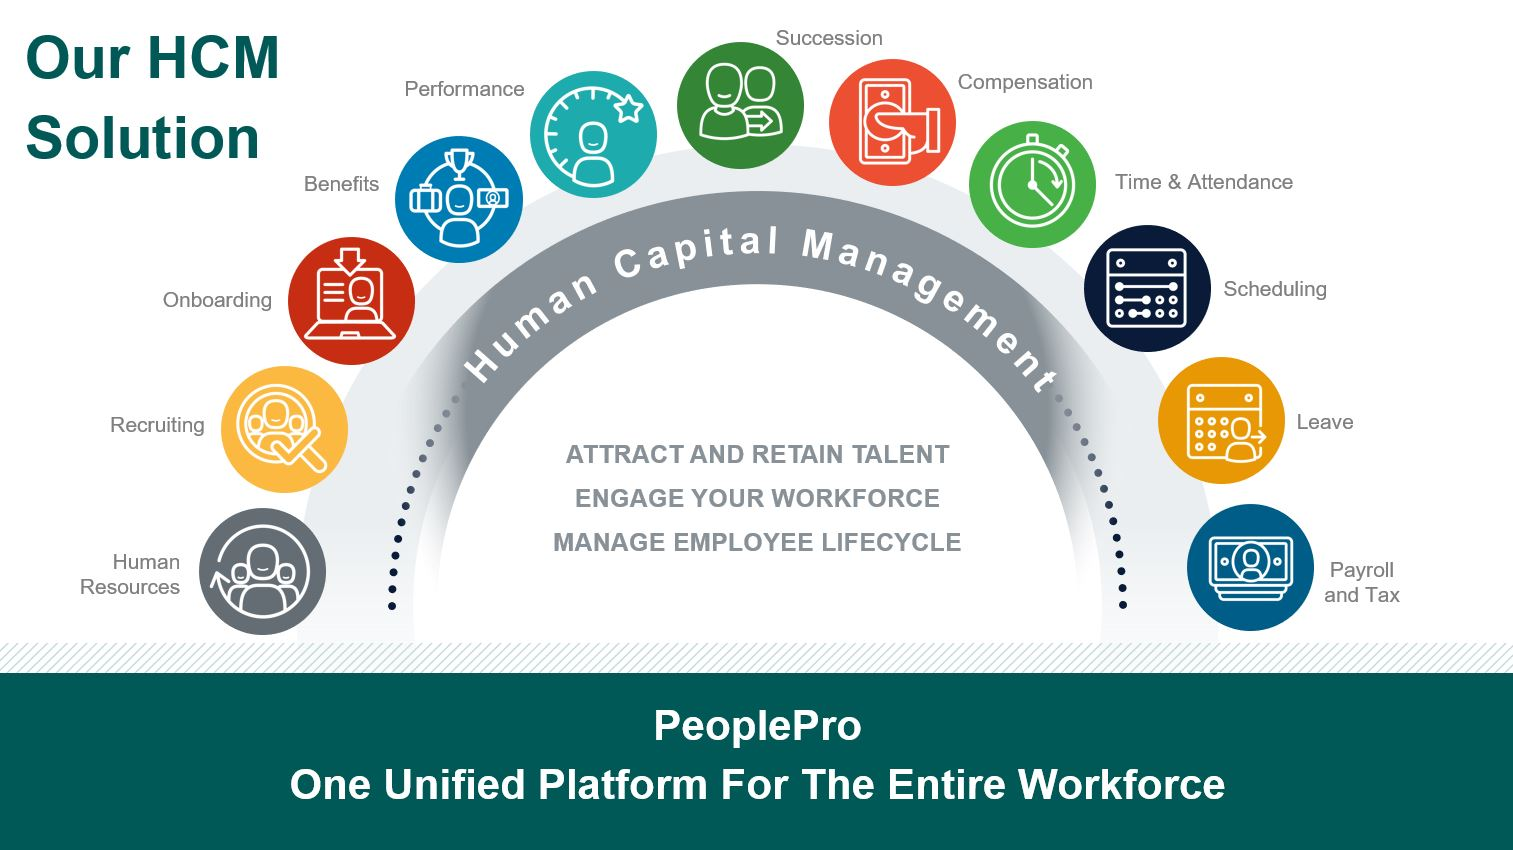 PeoplePro HCM Solution Graphic